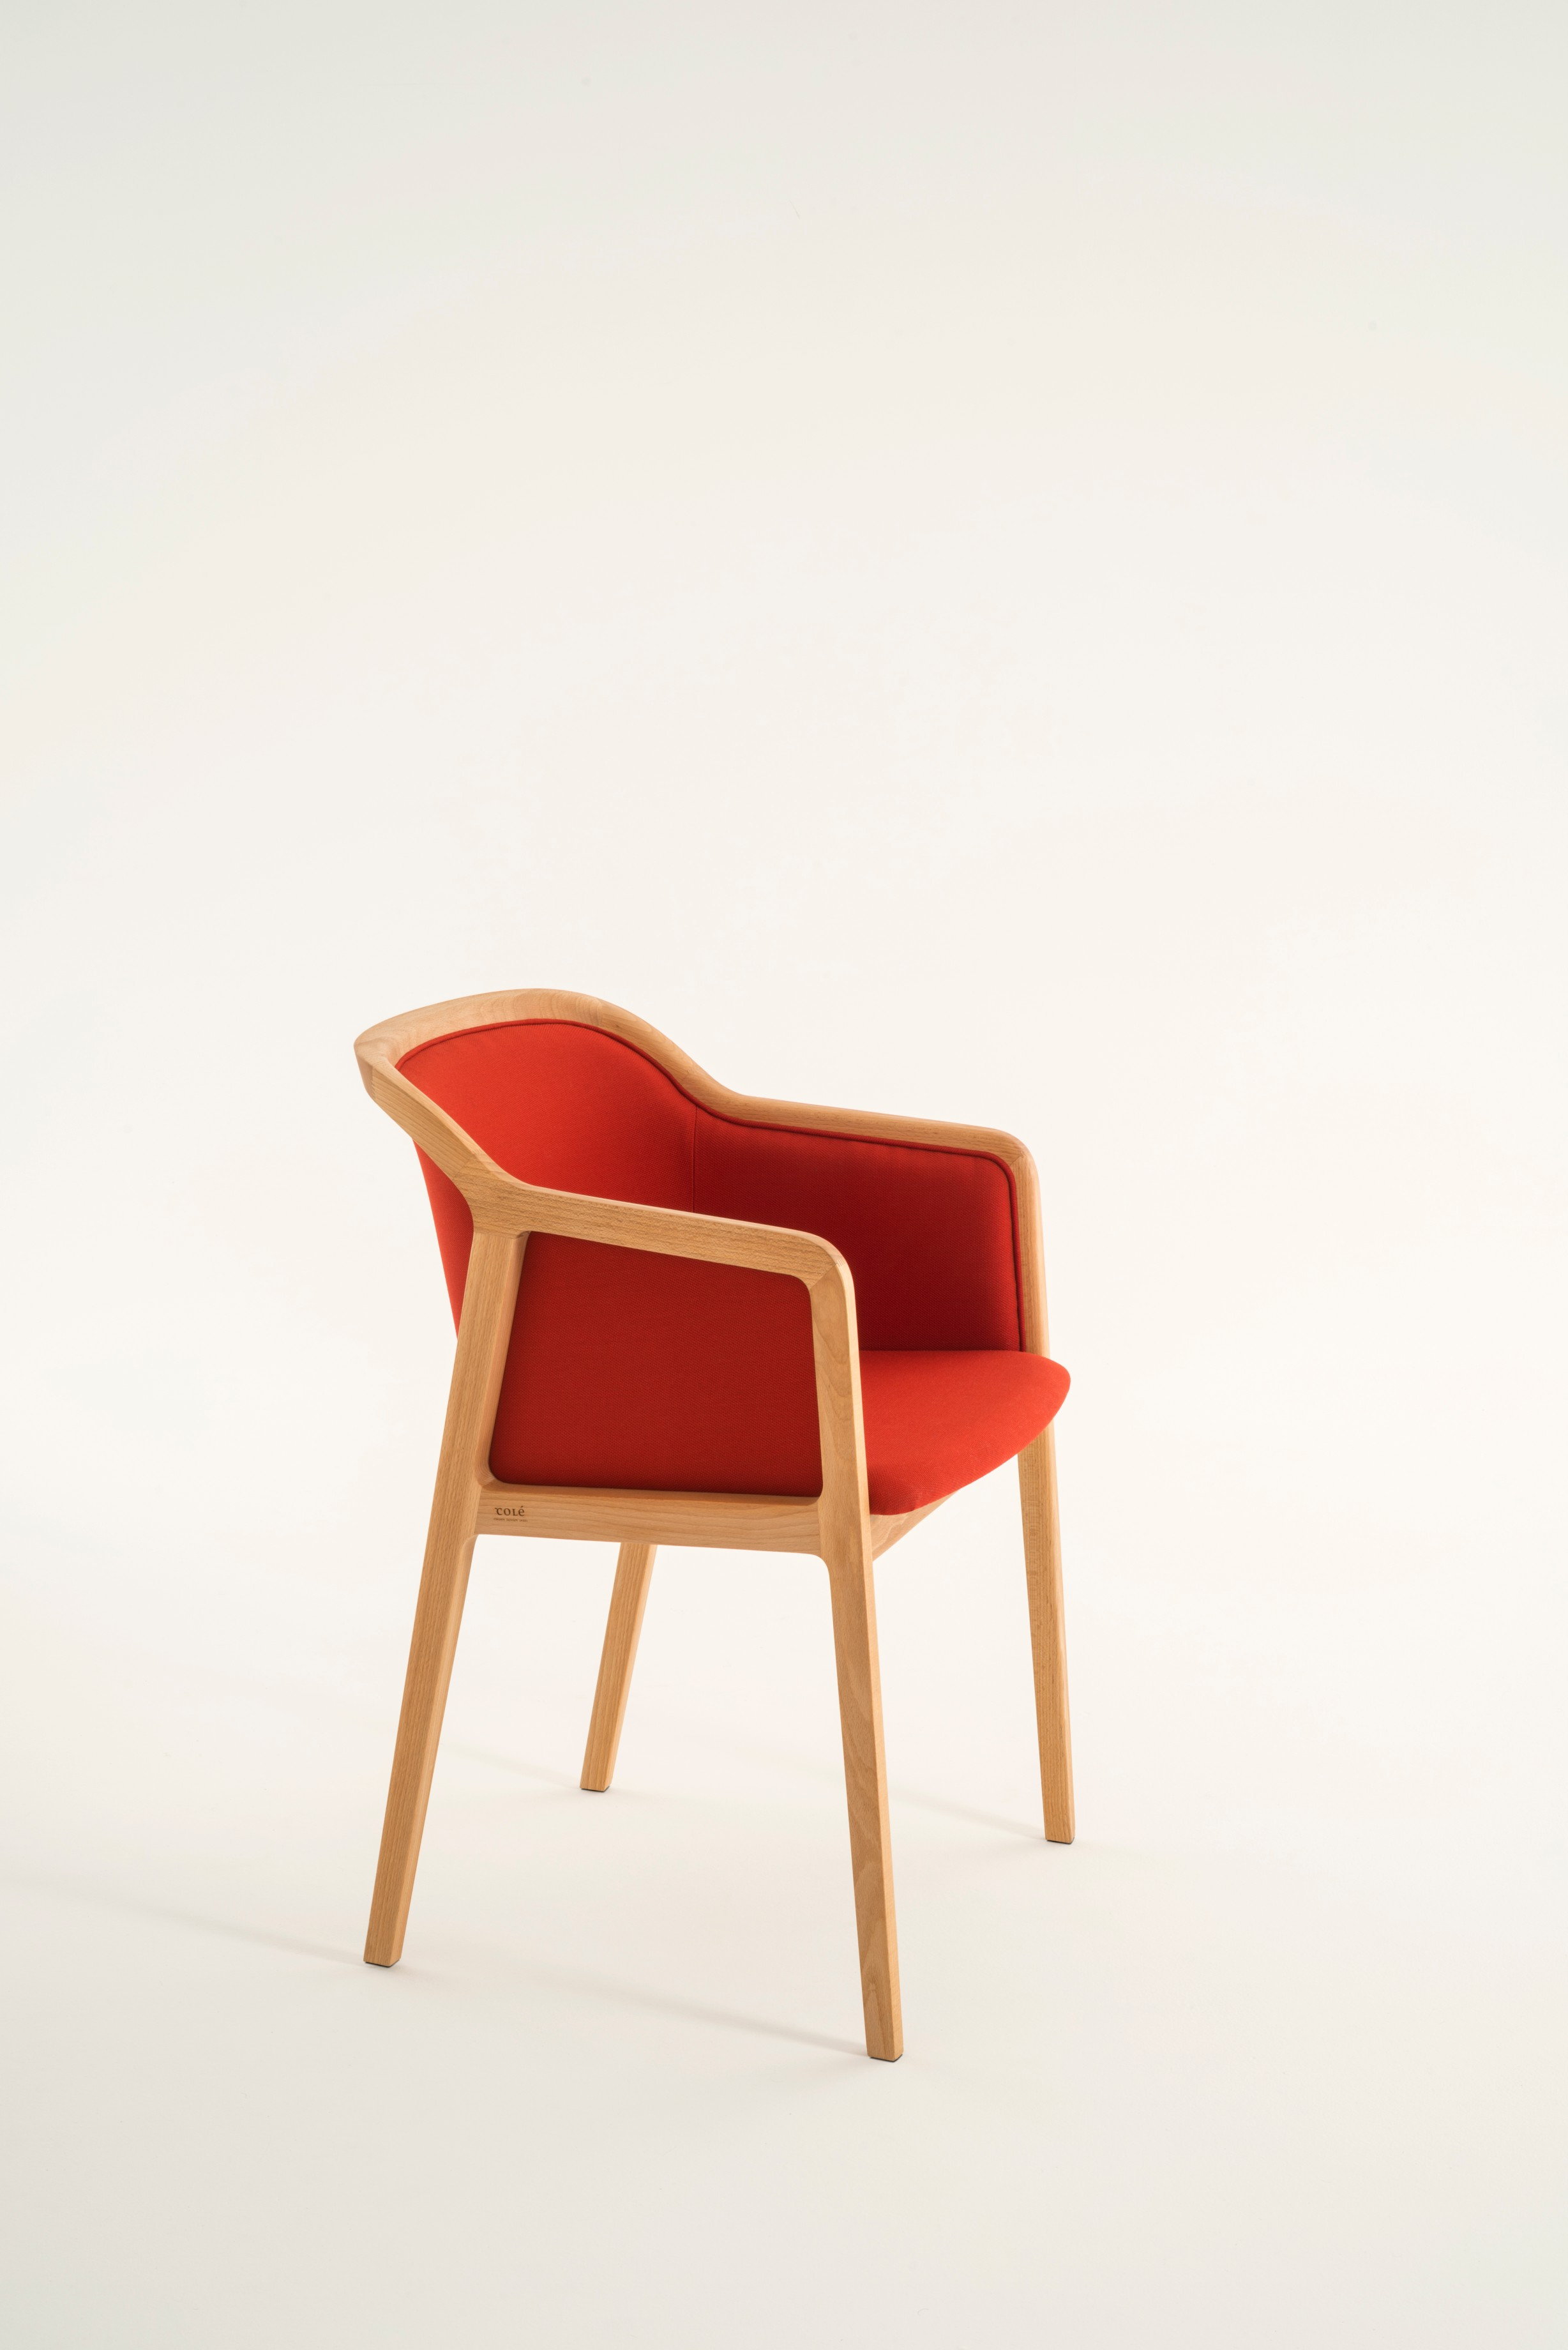 """Vienna Soft Little Armchair - Vienna is an extraordinarily comfortable and elegant armrest chair designed by Emmanuel Gallina who loves to quote Brancusi when saying that """"simplicity is complexity resolved"""". Inspired to the 50's of Marcel Gascoin, but also to Vienna at the end of the 19th century. A tribute to Alfred Sloan's American pragmatism joined to European styling and, in this particular case, to the renowned Italian talent constantly aiming to harmonise beauty and functionality.  UPHOLSTERY A range of fabrics and colours are available for the upholstery, prices may vary. Please feel free to contact for full details and other enquiries.    Matter of Stuff"""